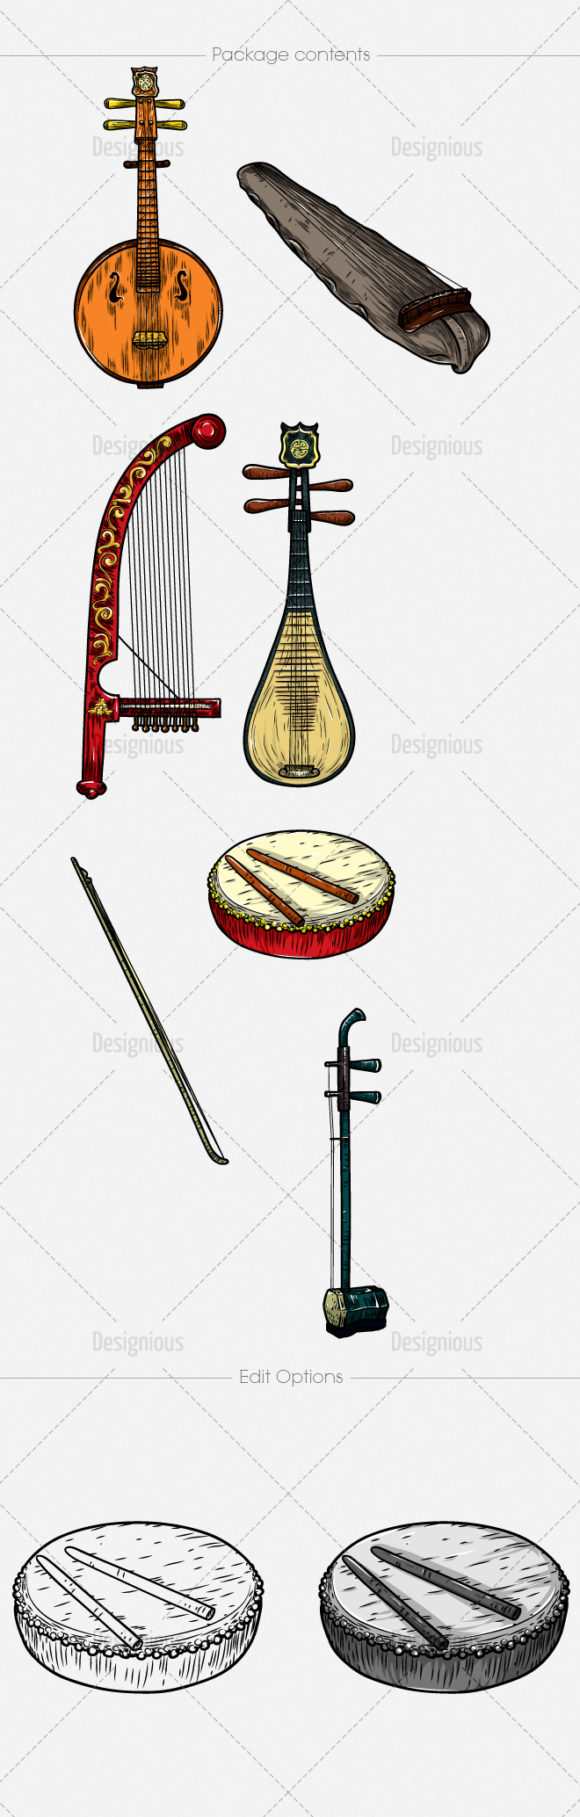 Chinese Music Instruments Vector Pack 1 products designious chinese music instruments vector pack 1 large 1